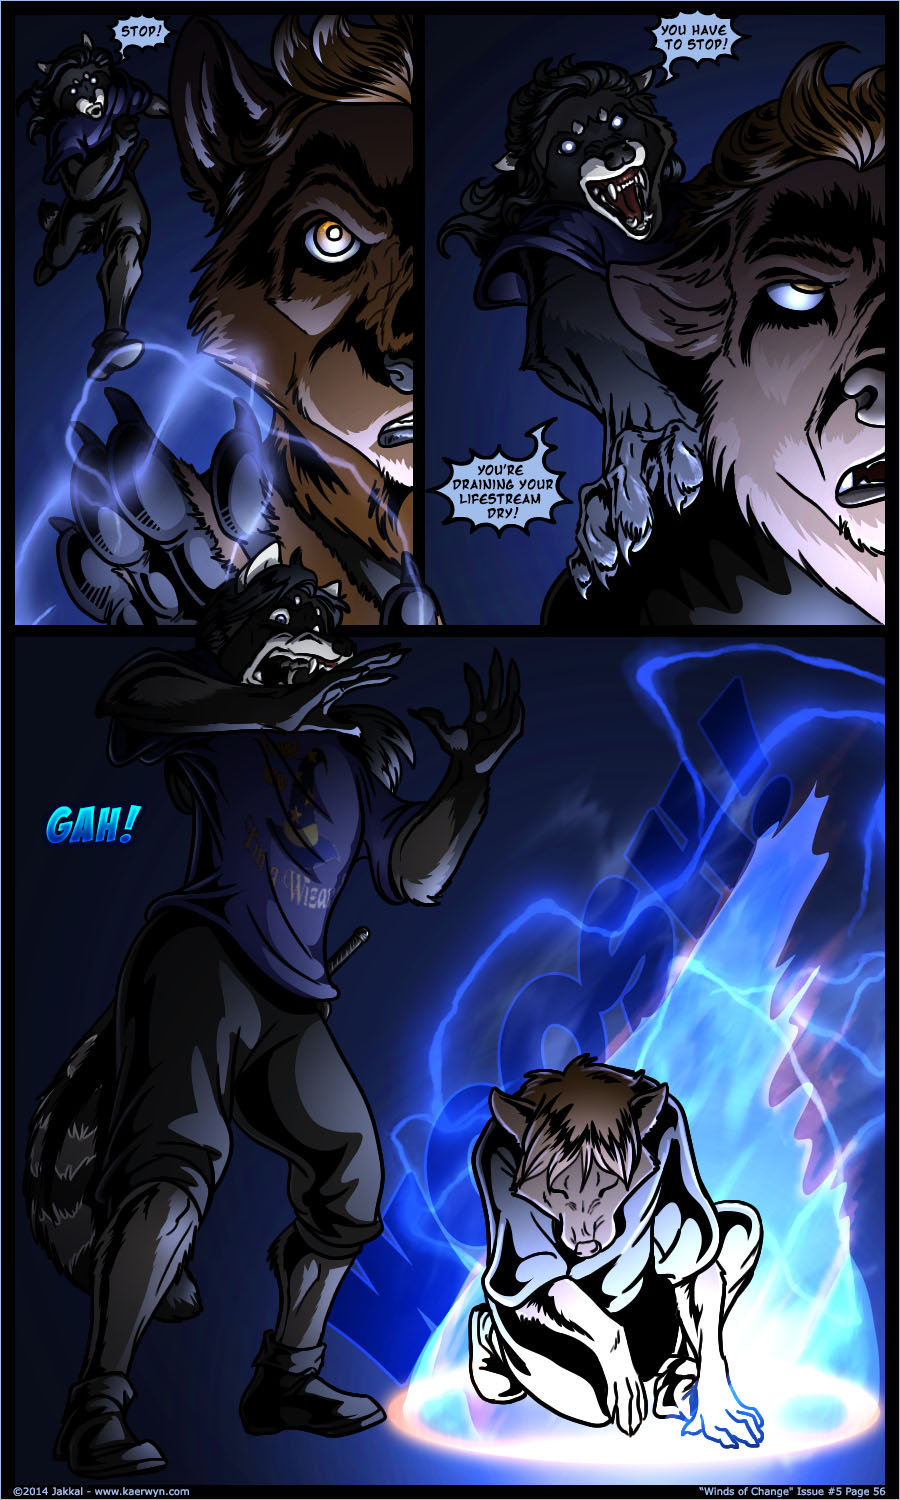 Issue 5 Page 56